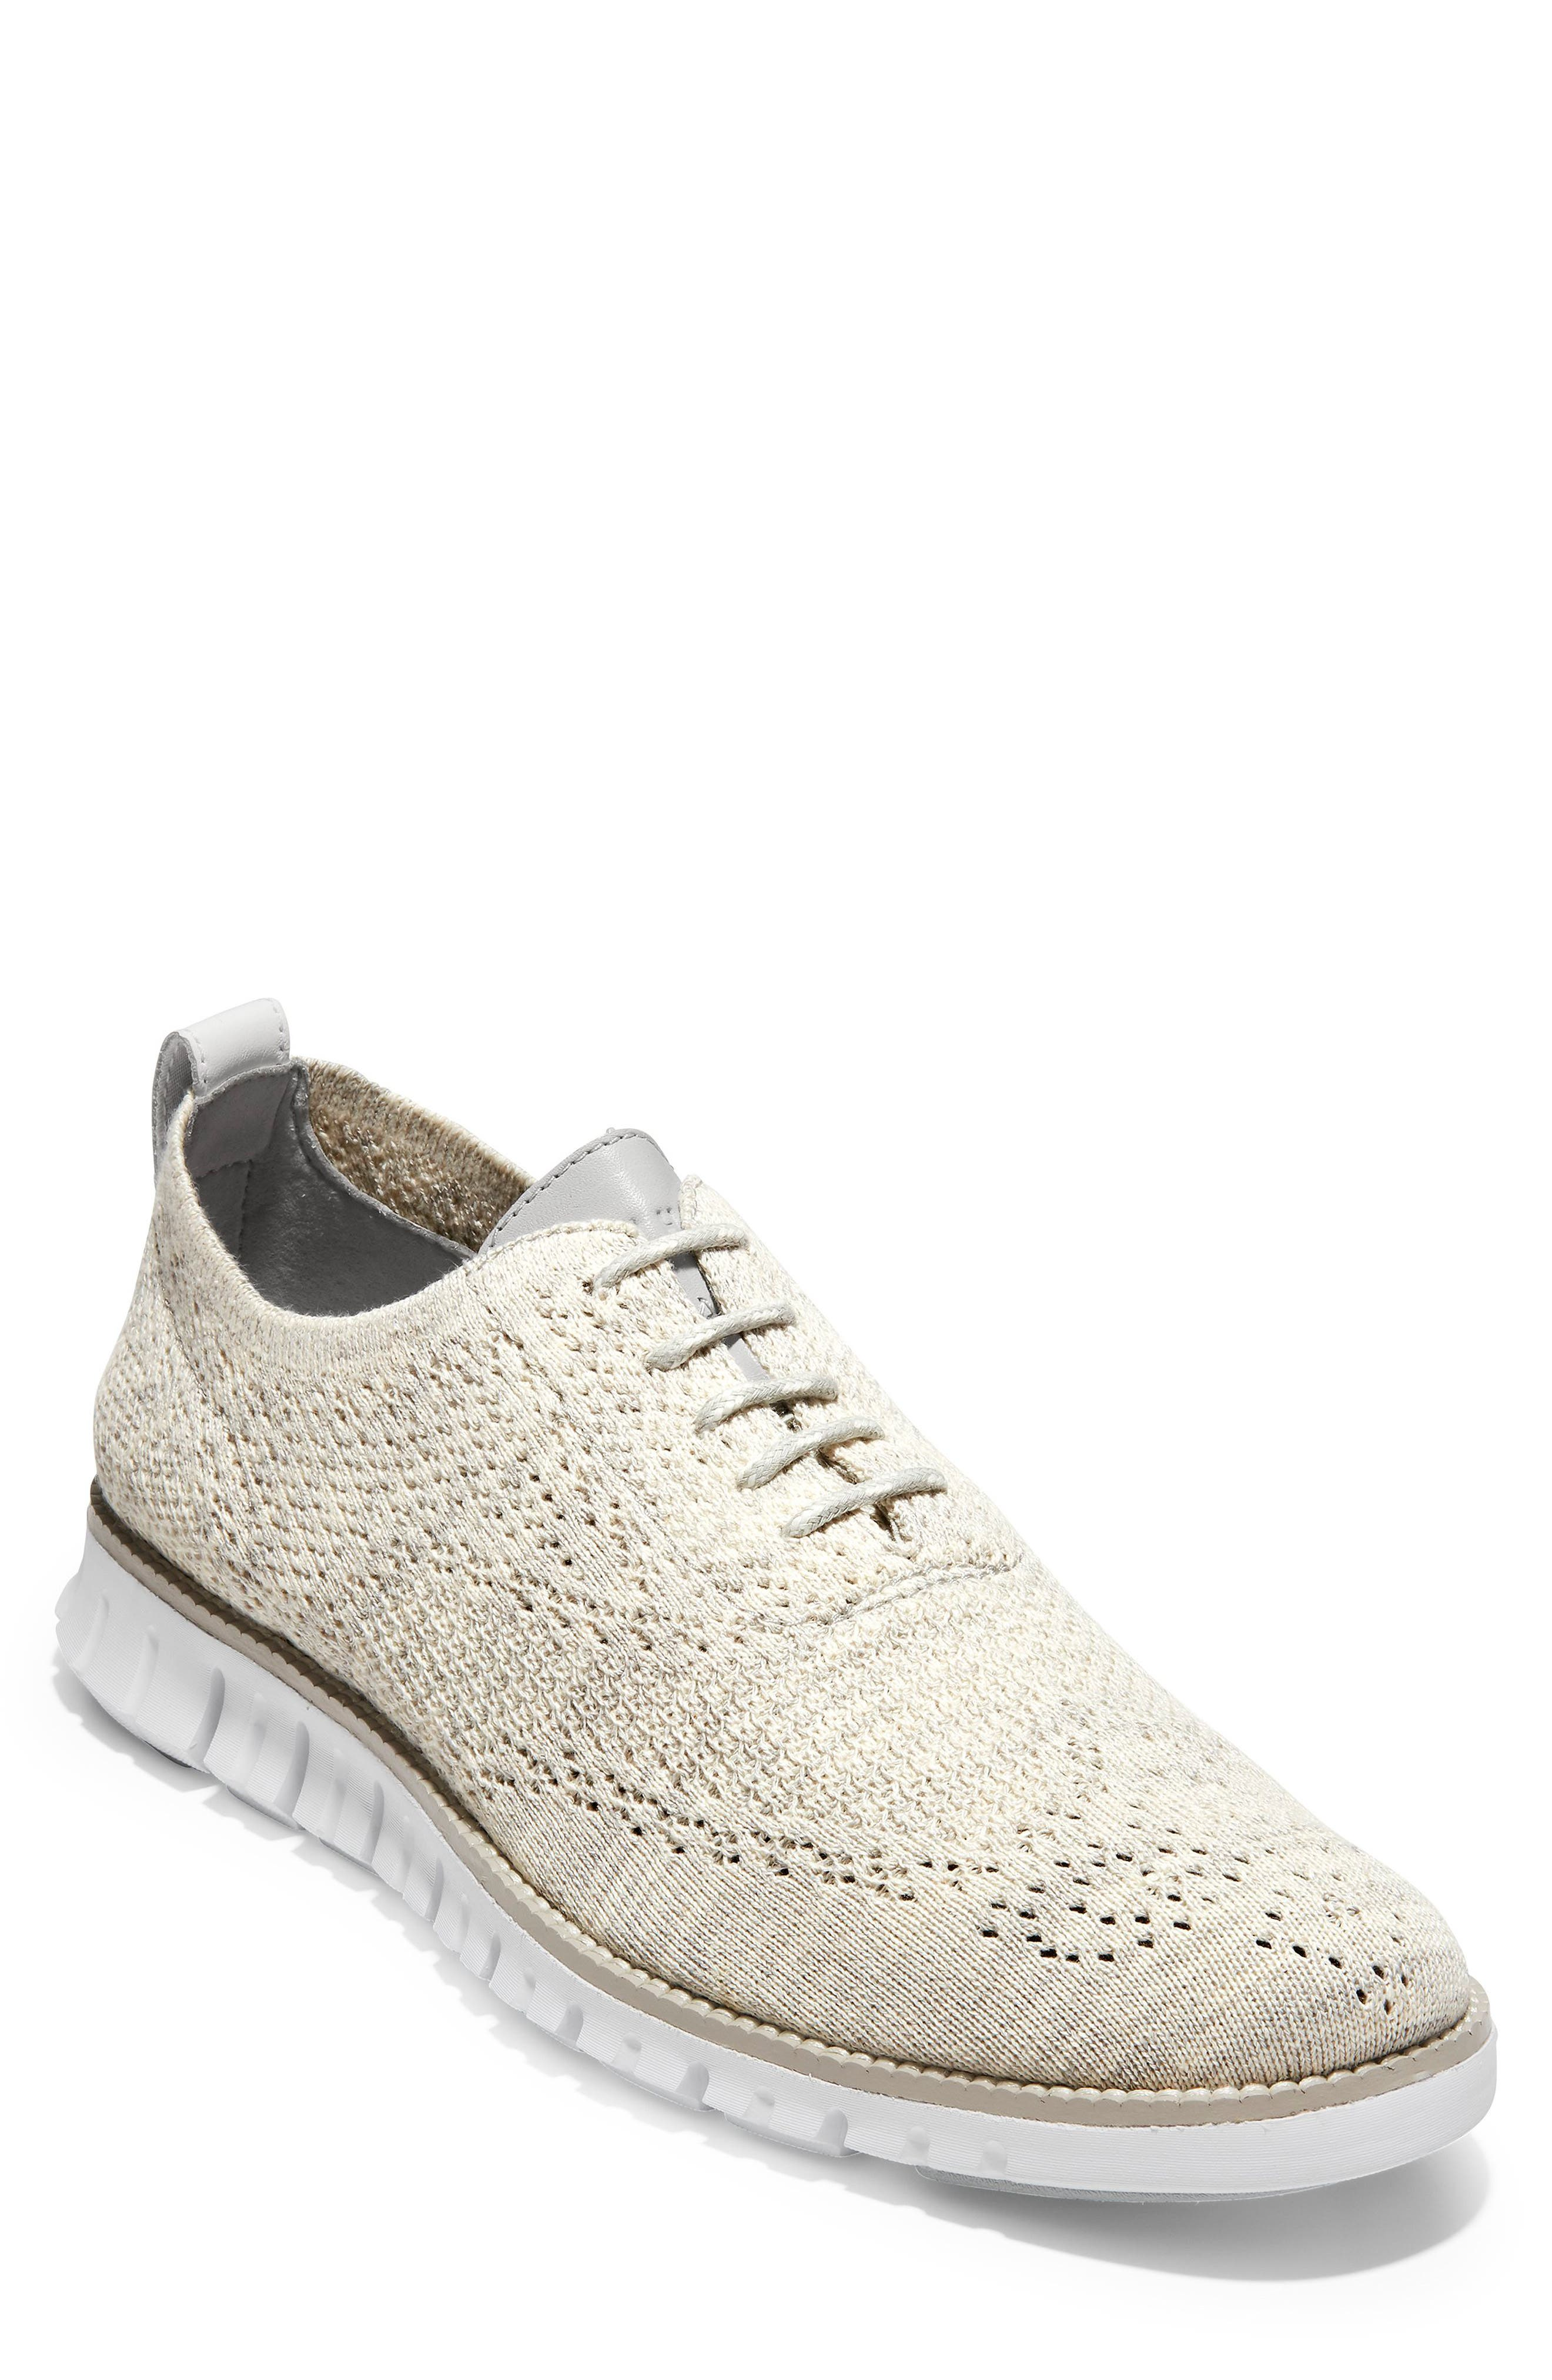 ZeroGrand Stitchlite Woven Wool Wingtip,                             Main thumbnail 1, color,                             HARBOR MIST KNIT